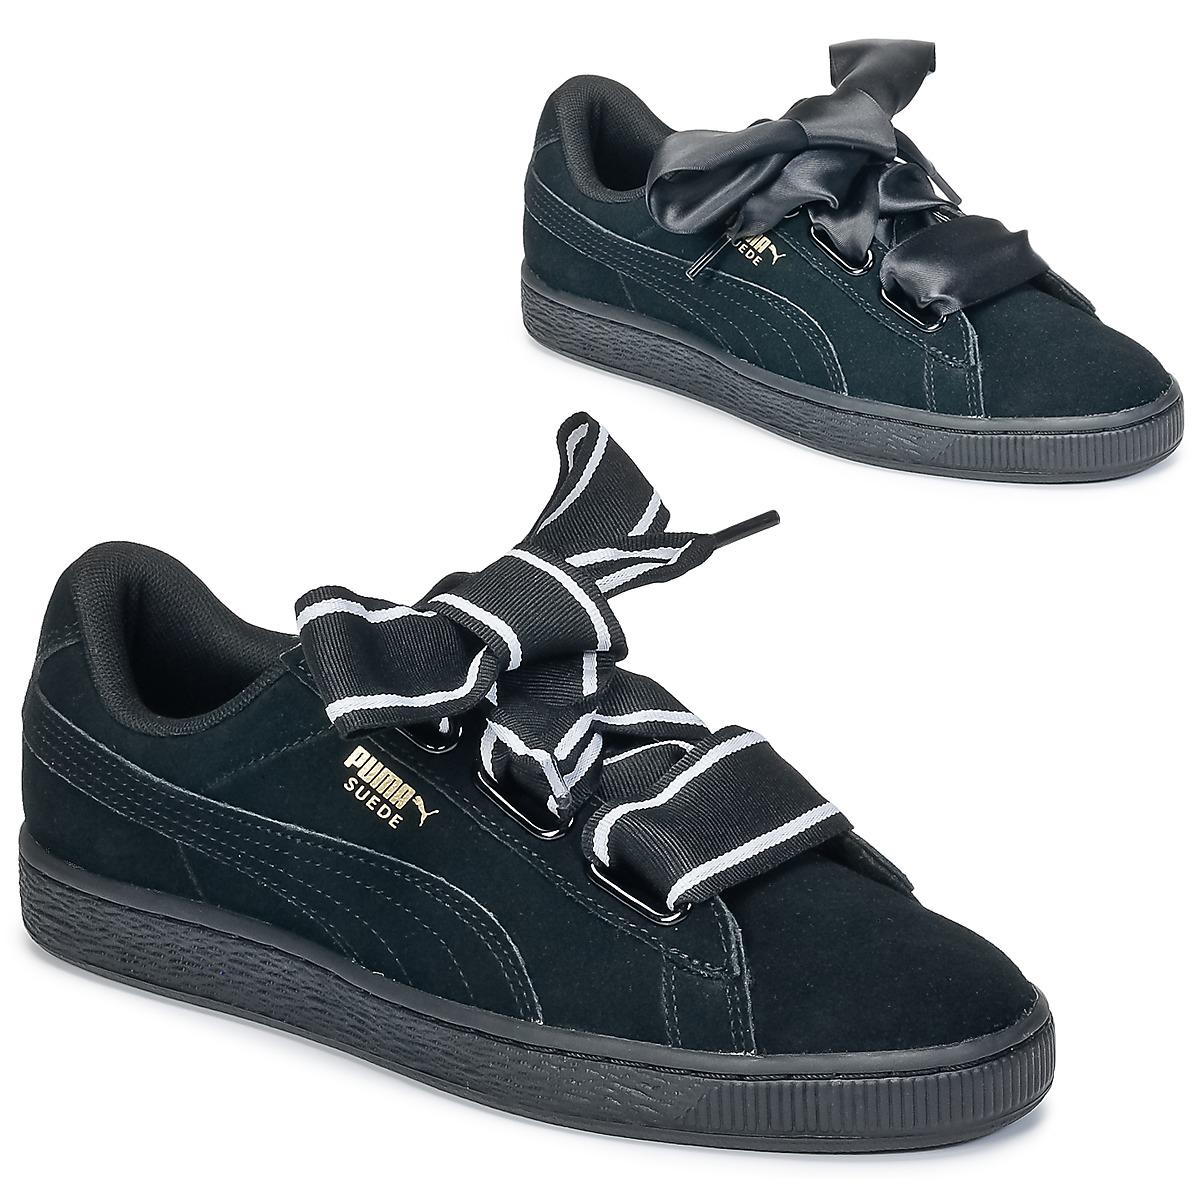 763b7261ad4 PUMA Basket Heart Satin Women s Shoes (trainers) In Black in Black ...